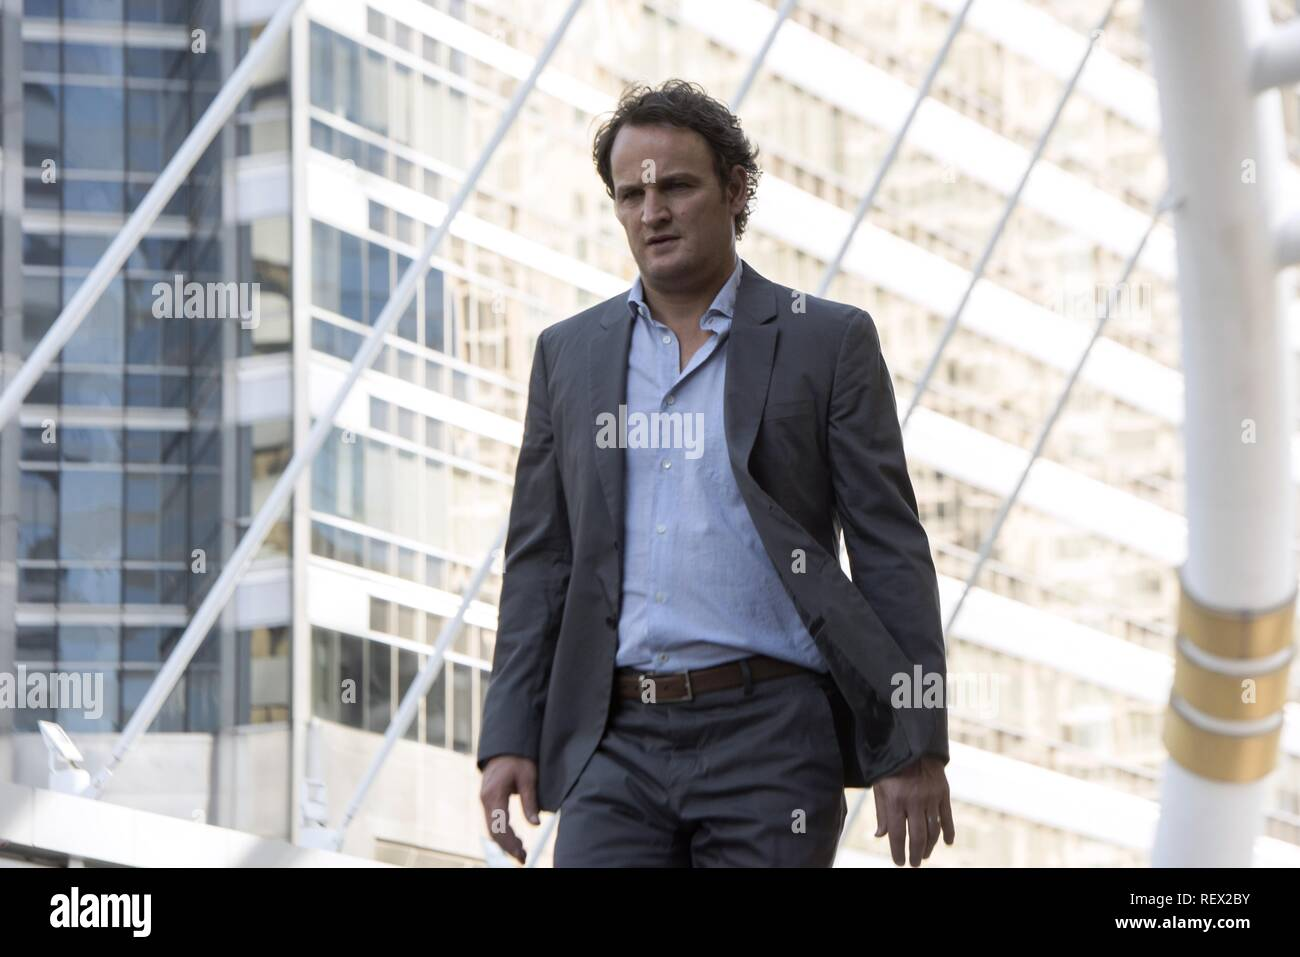 JASON CLARKE ALL I SEE IS YOU (2016) - Stock Image